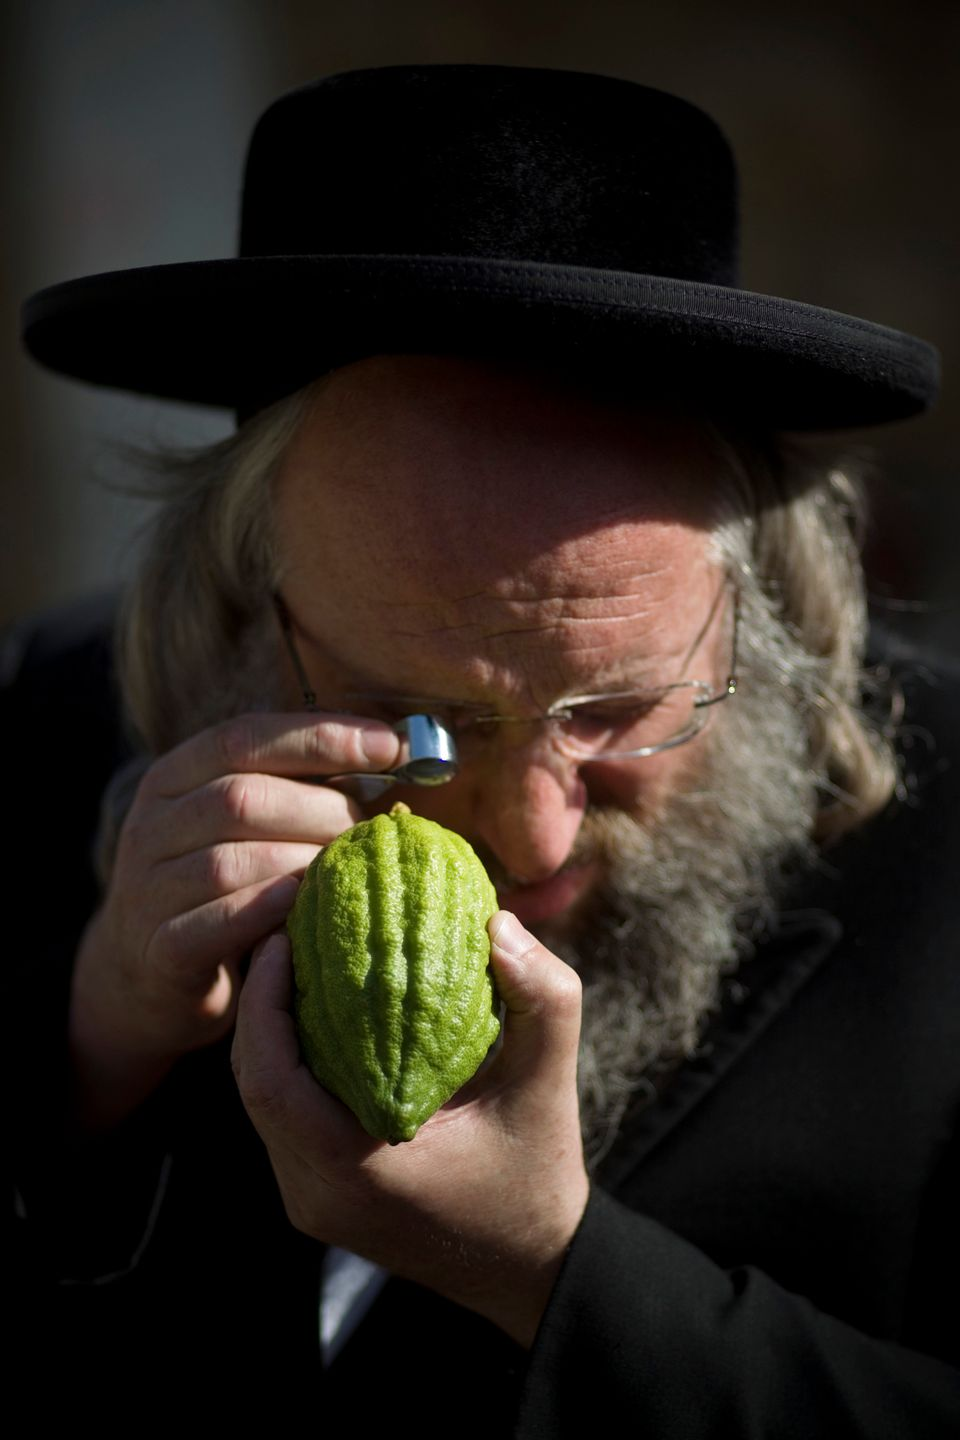 An Ultra Orthodox Jewish man checks an etrog, a lemon-like citrus fruit, for blemishes to determine if is ritually acceptable